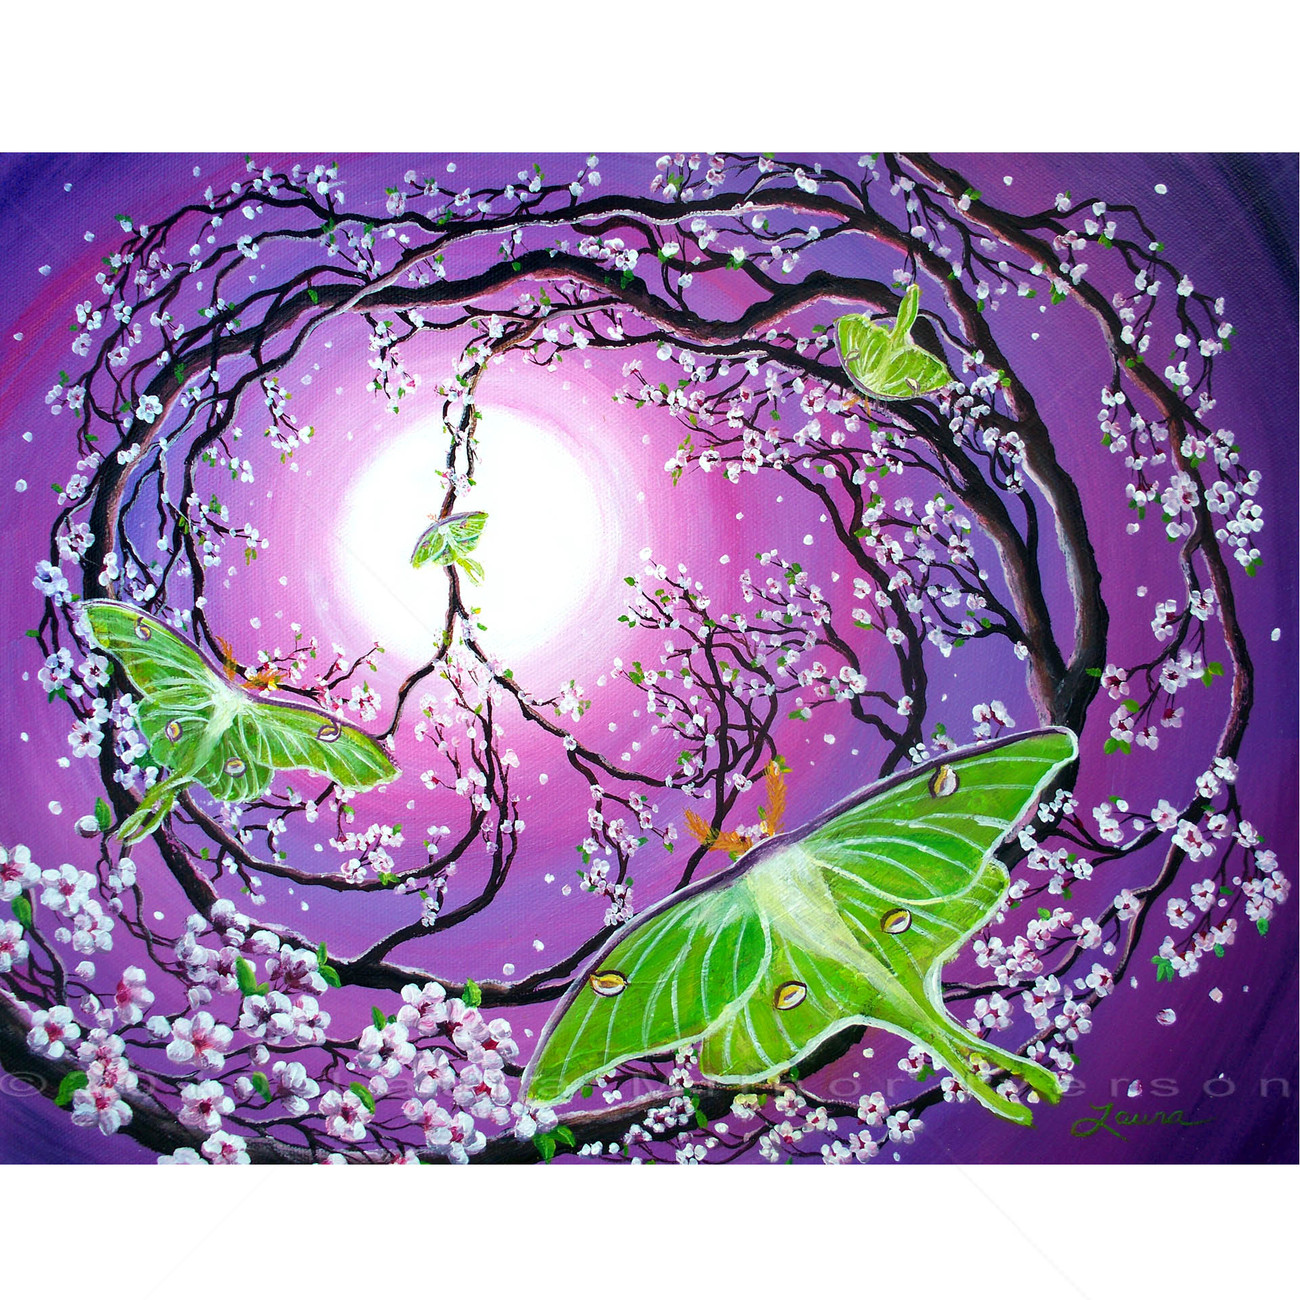 Original Painting Peace Sign Tree Luna Moths Purple Cherry Blossoms Sakura Green